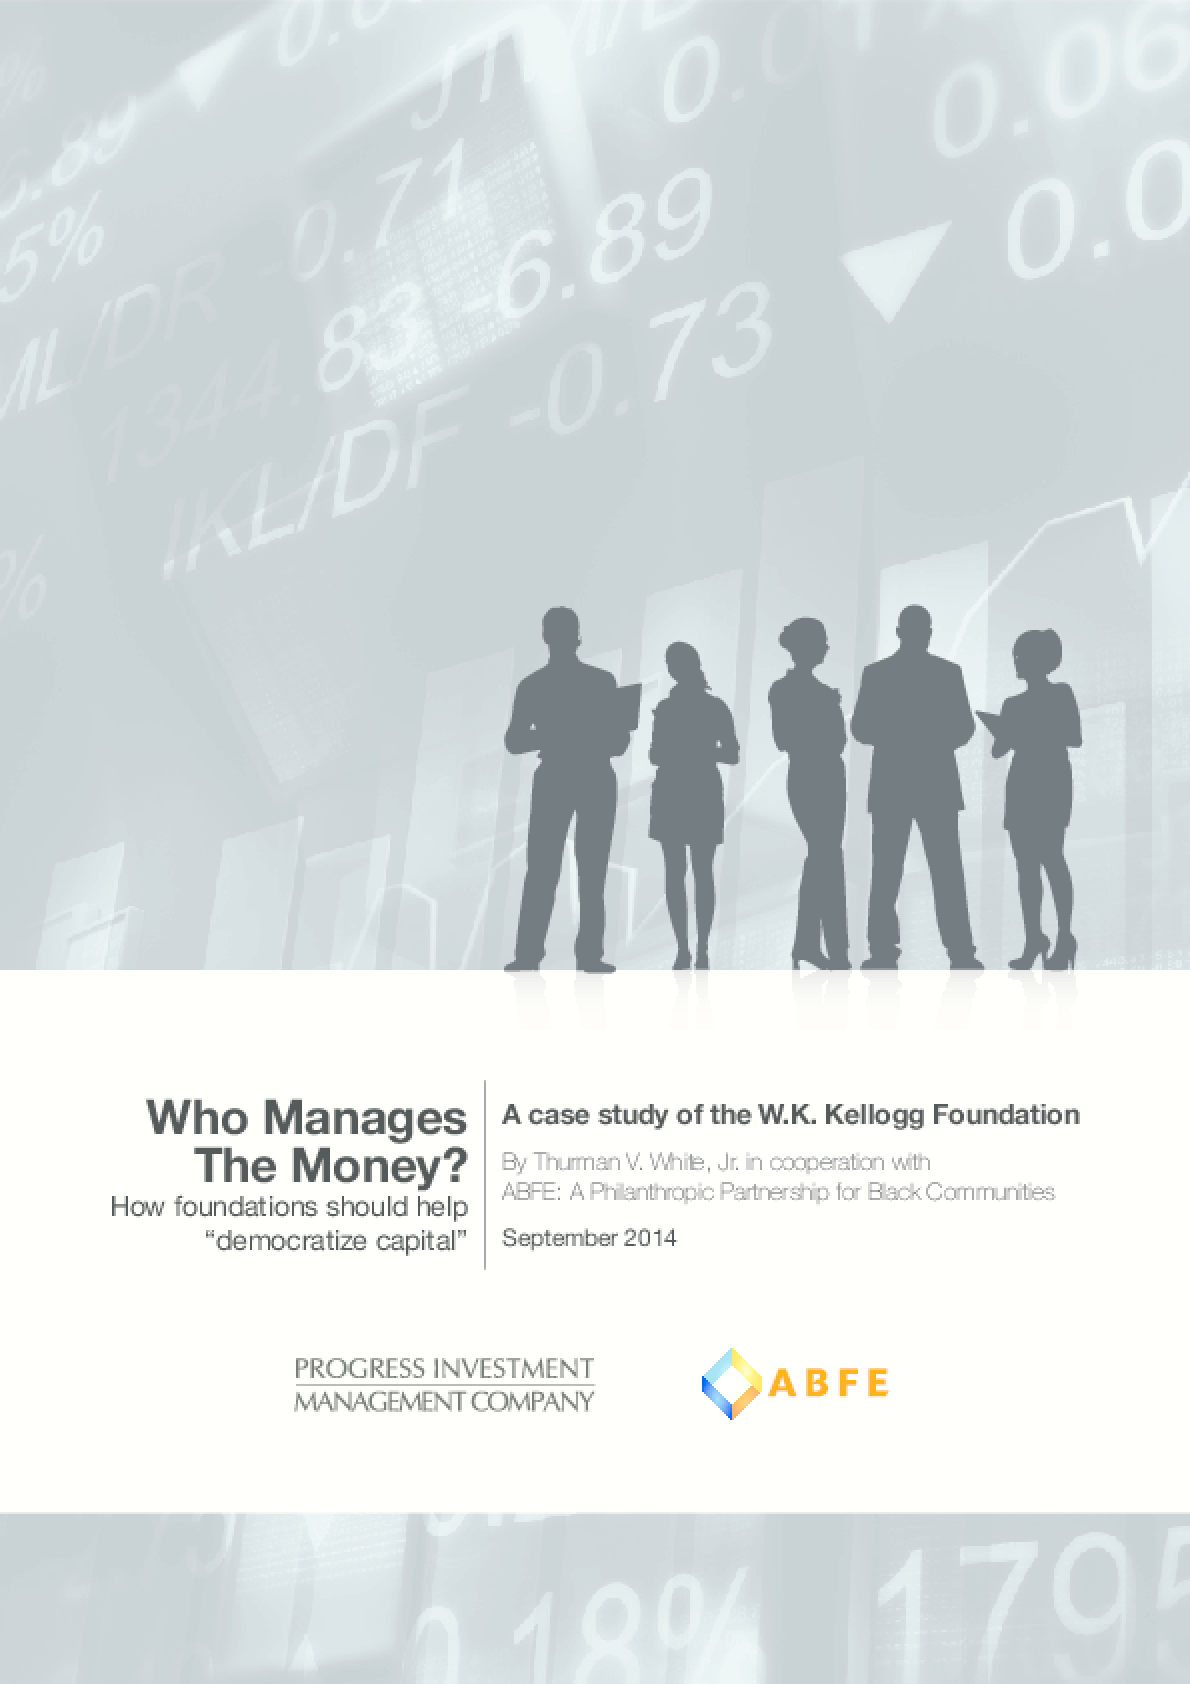 Who Manages The Money? How Foundations Should Help Democratize Capital